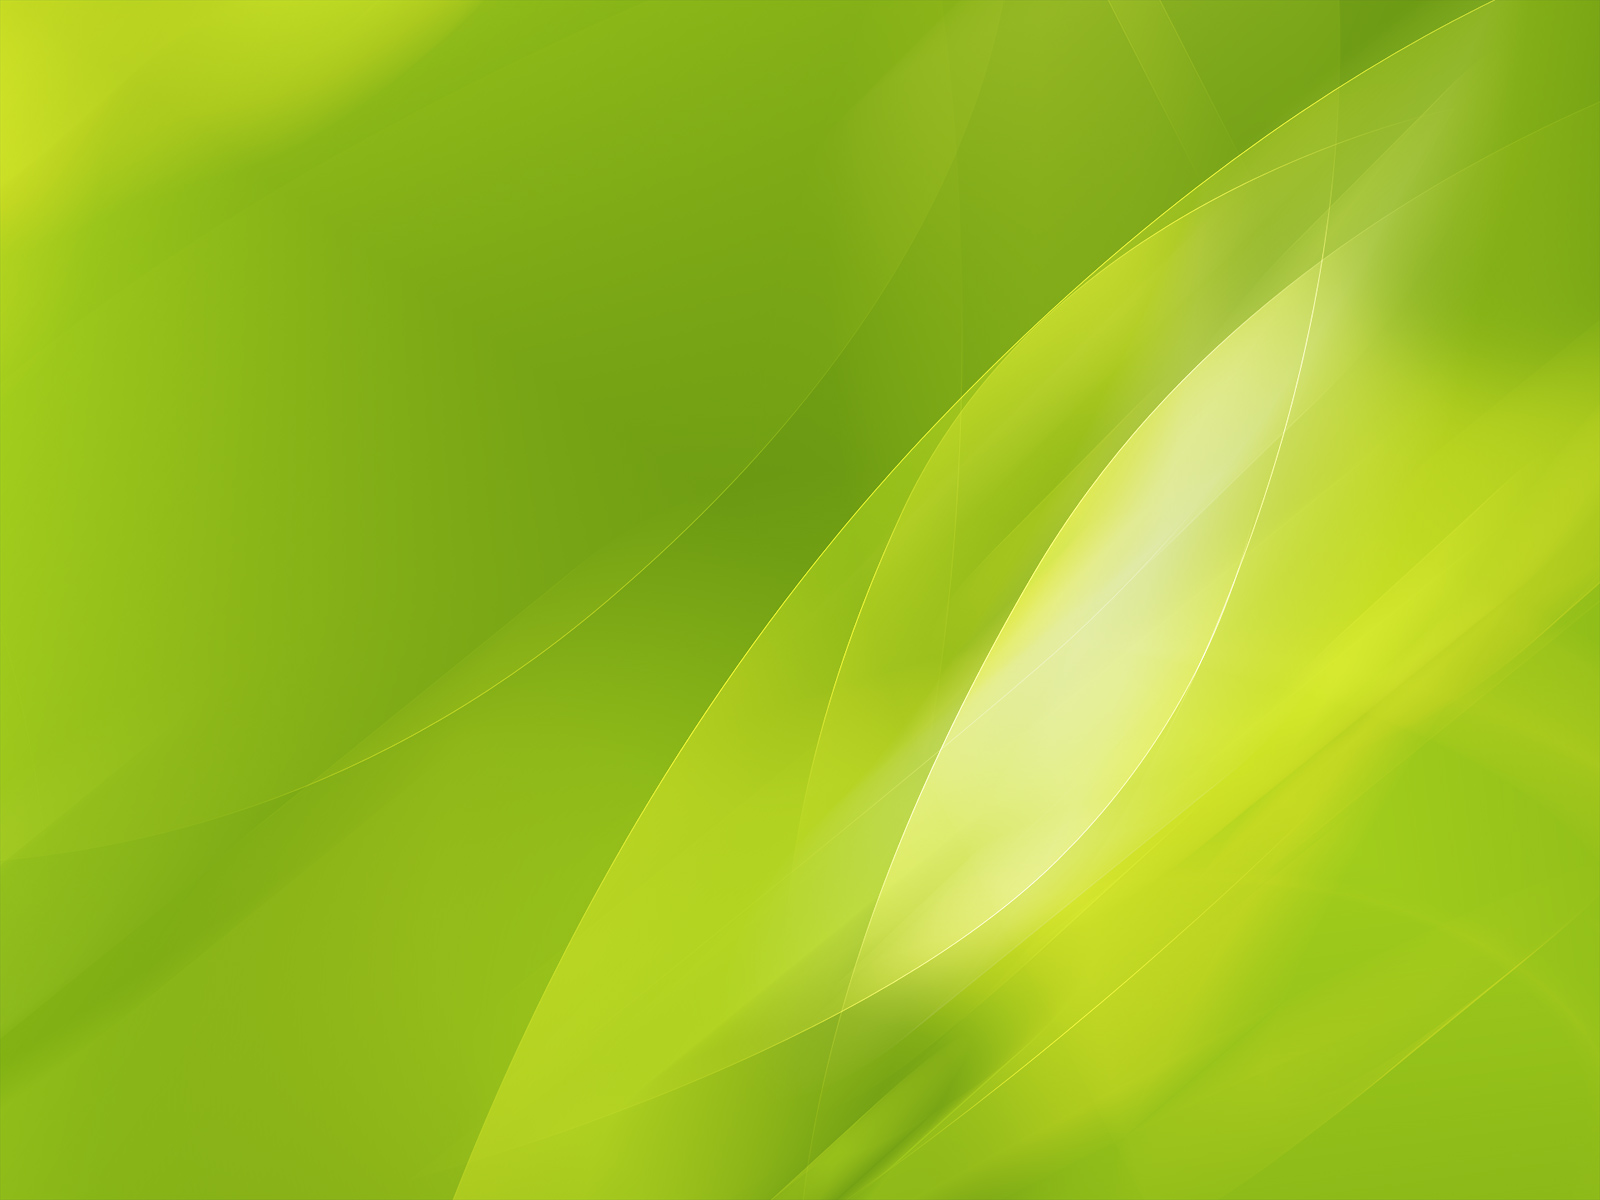 Lime Green Wallpaper 21079 1600x1200 px ~ HDWallSource.com